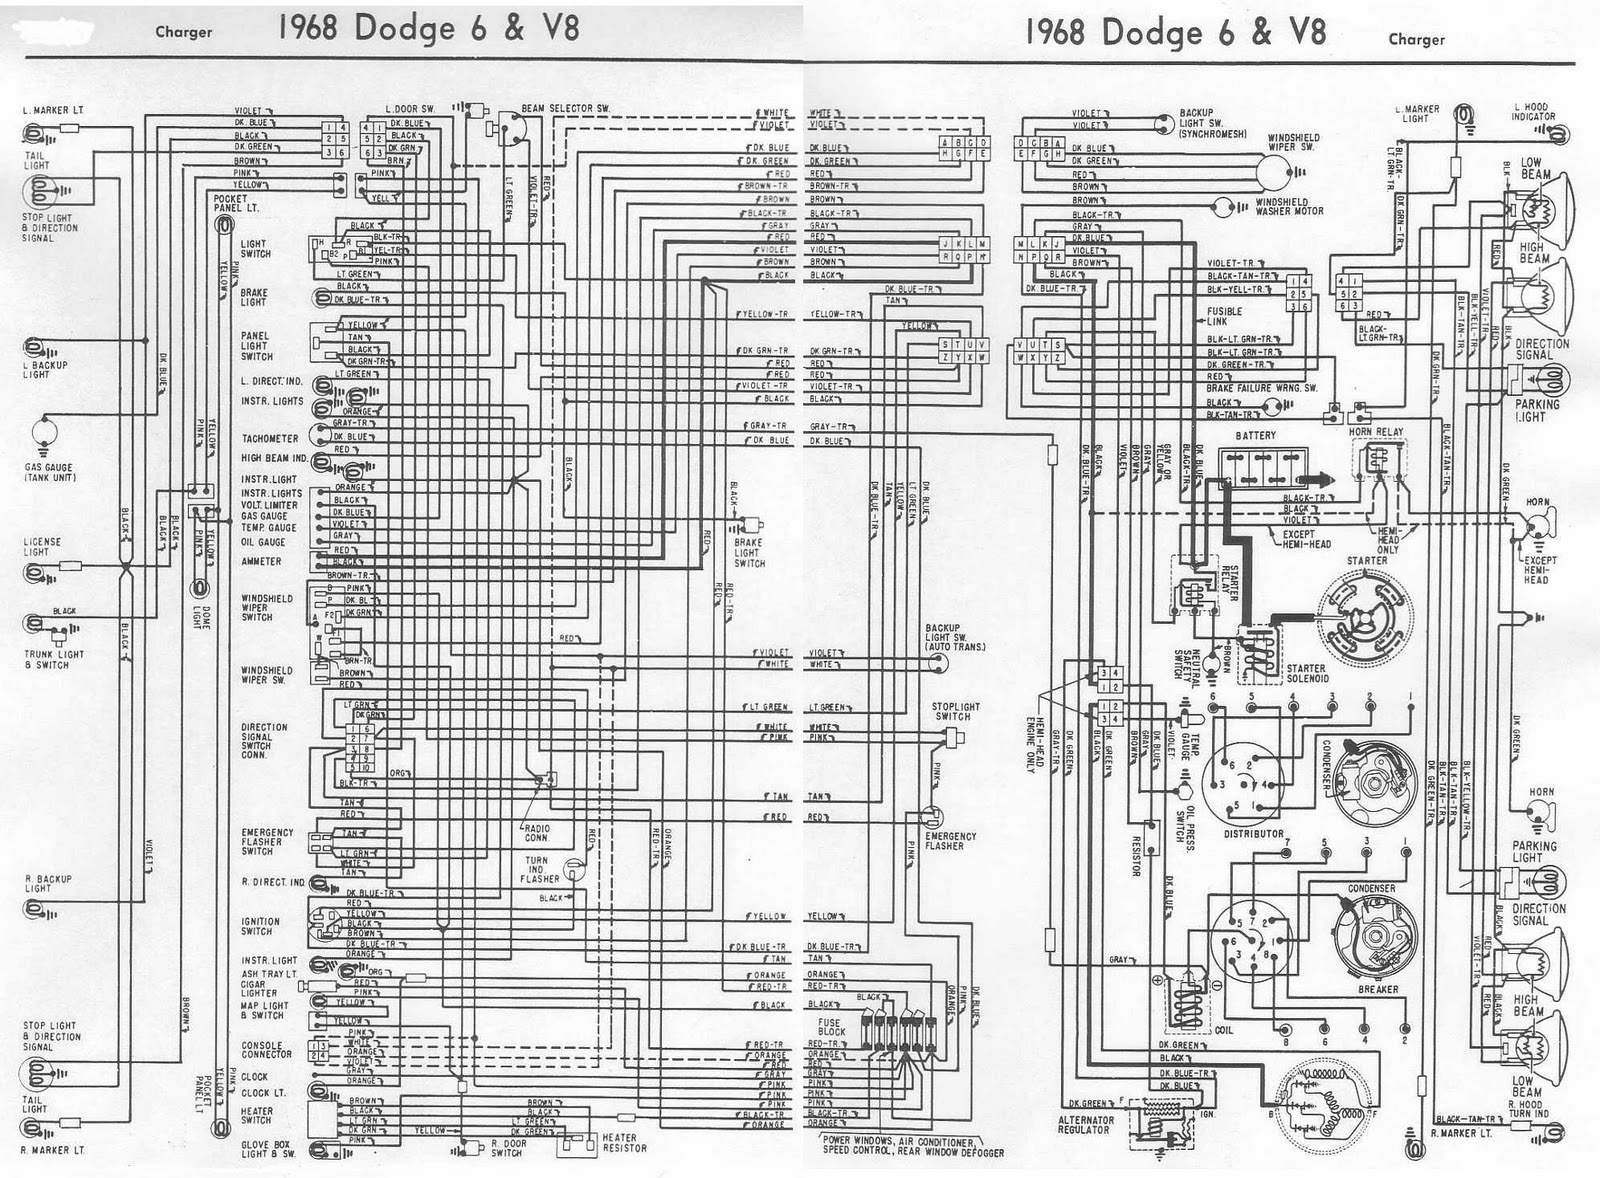 Dodge+Charger+1968+6+and+V8+Complete+Electrical+Wiring+Diagram dodge charger wiring diagram dodge wiring diagrams instruction 1970 dodge coronet wiring diagram at gsmportal.co